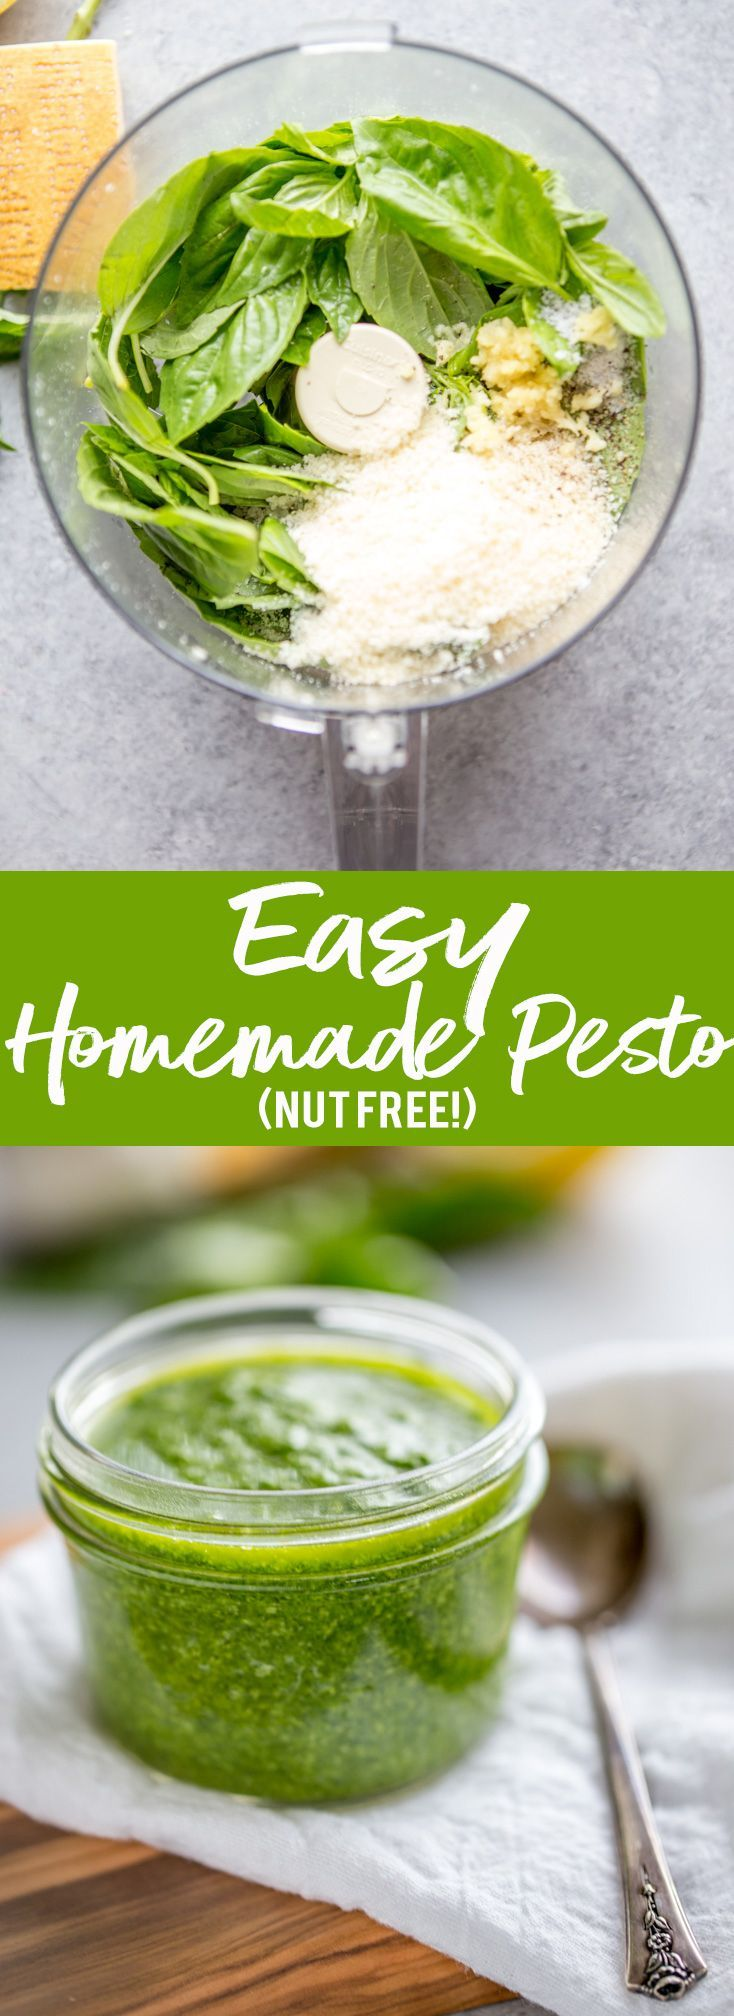 This easy Homemade Pesto is also nut free!  It only takes 5 minutes and tastes amazing. Freshly made pesto is like summer in a jar!